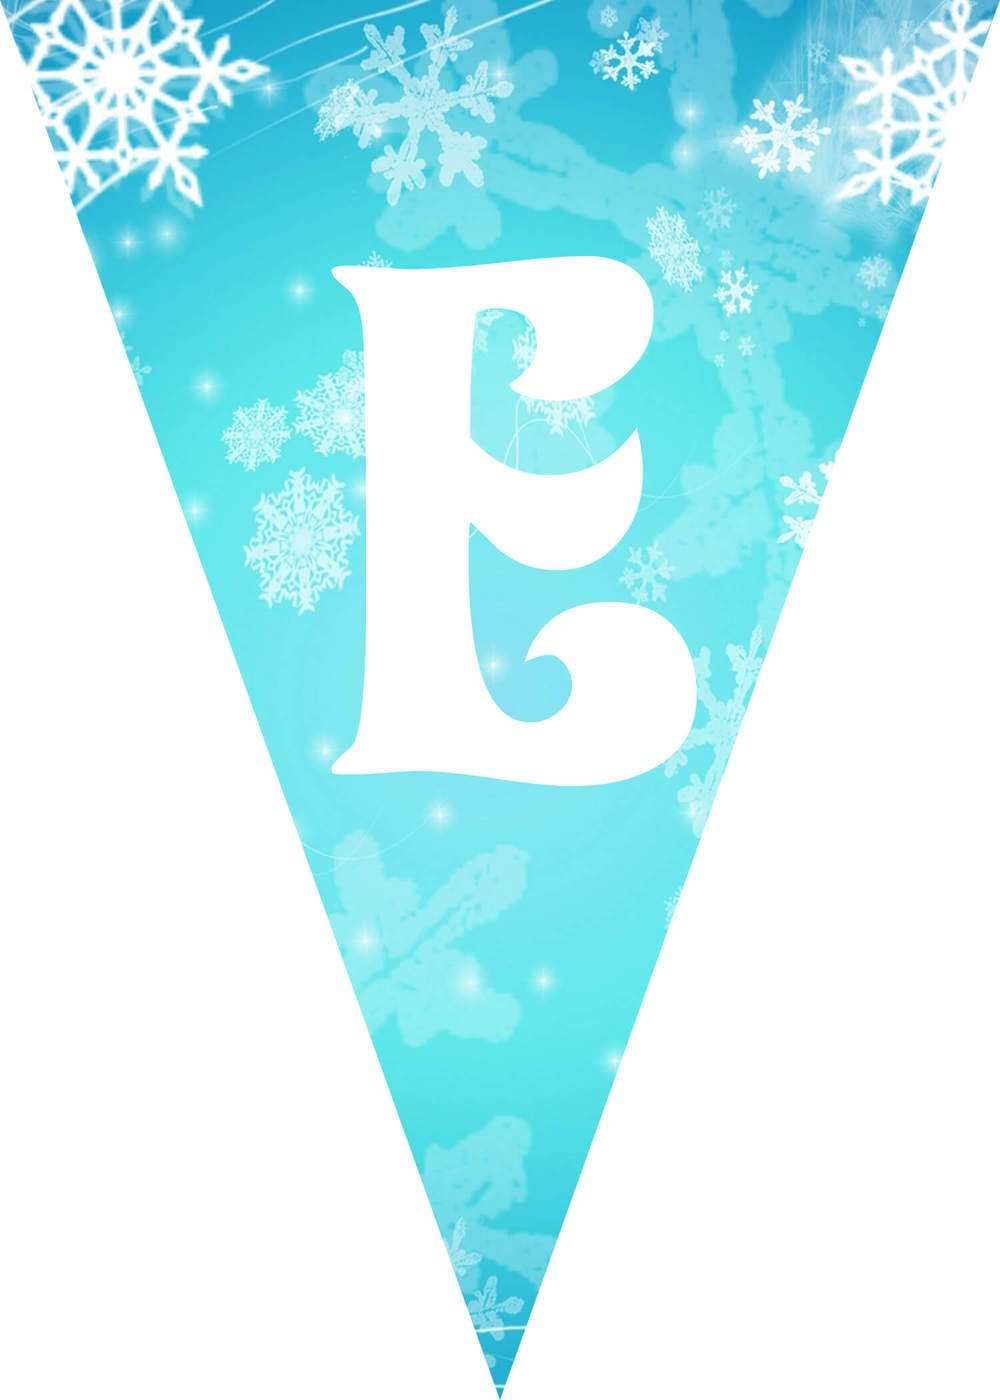 Frozen Party Ideas With Free Printables - Frozen Happy Birthday Banner Free Printable